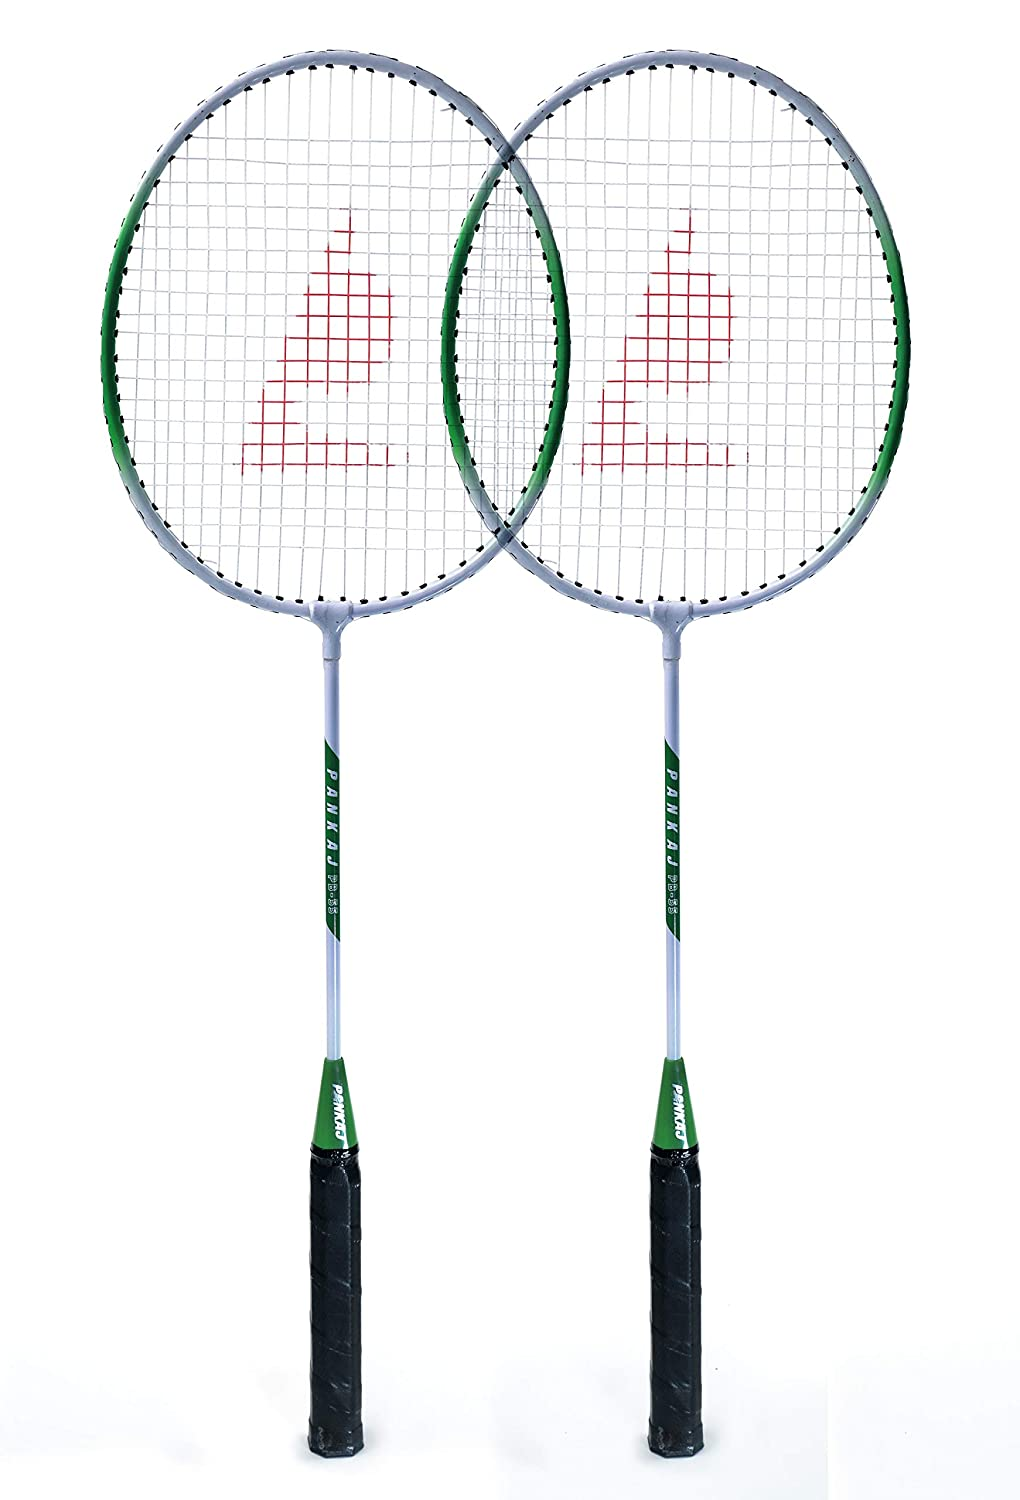 Badminton Racket - PB 55 - Pack for 2 (Green)